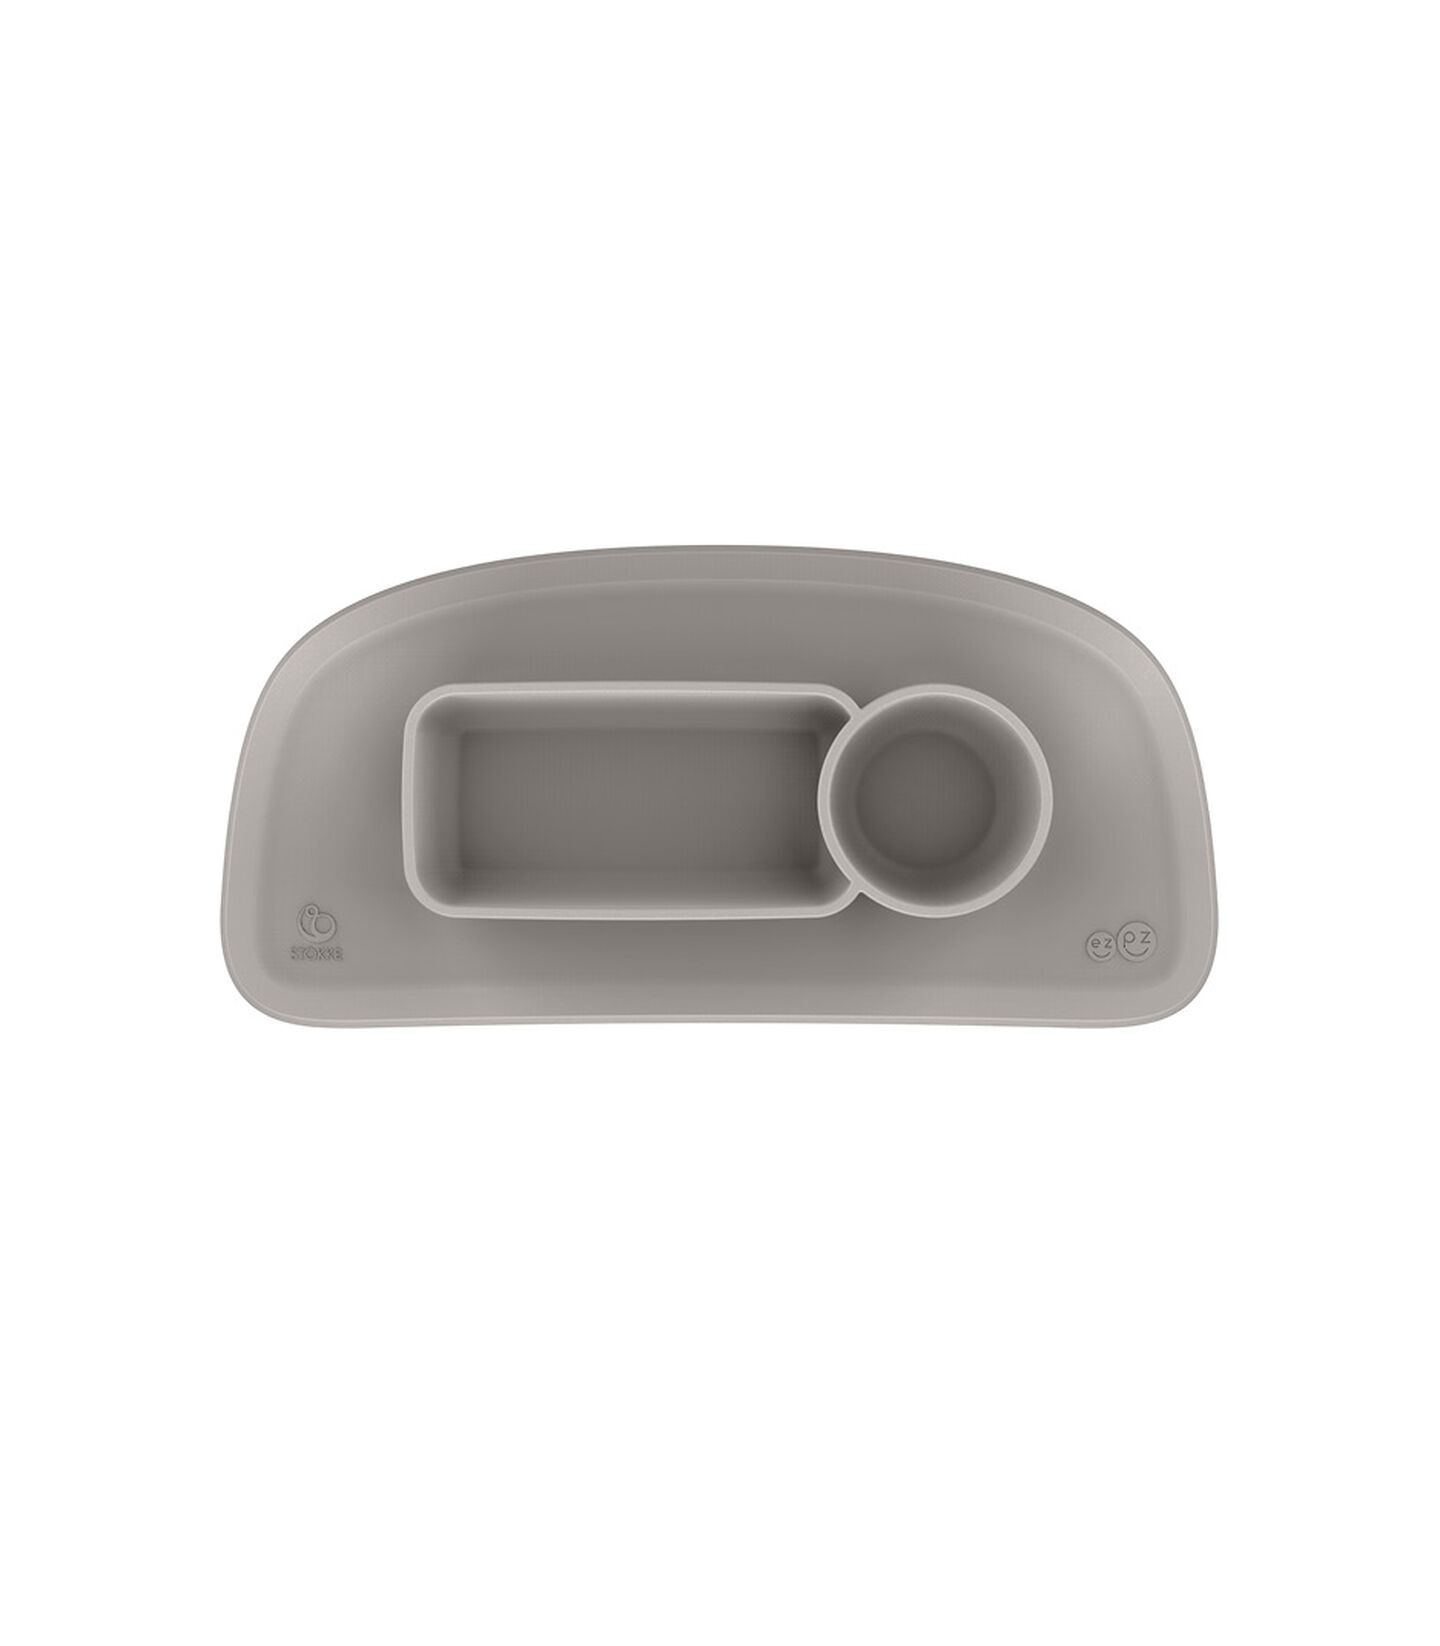 ezpz™ by Stokke™ placemat for Stokke® Tray Soft Grey, Soft Grey, mainview view 2